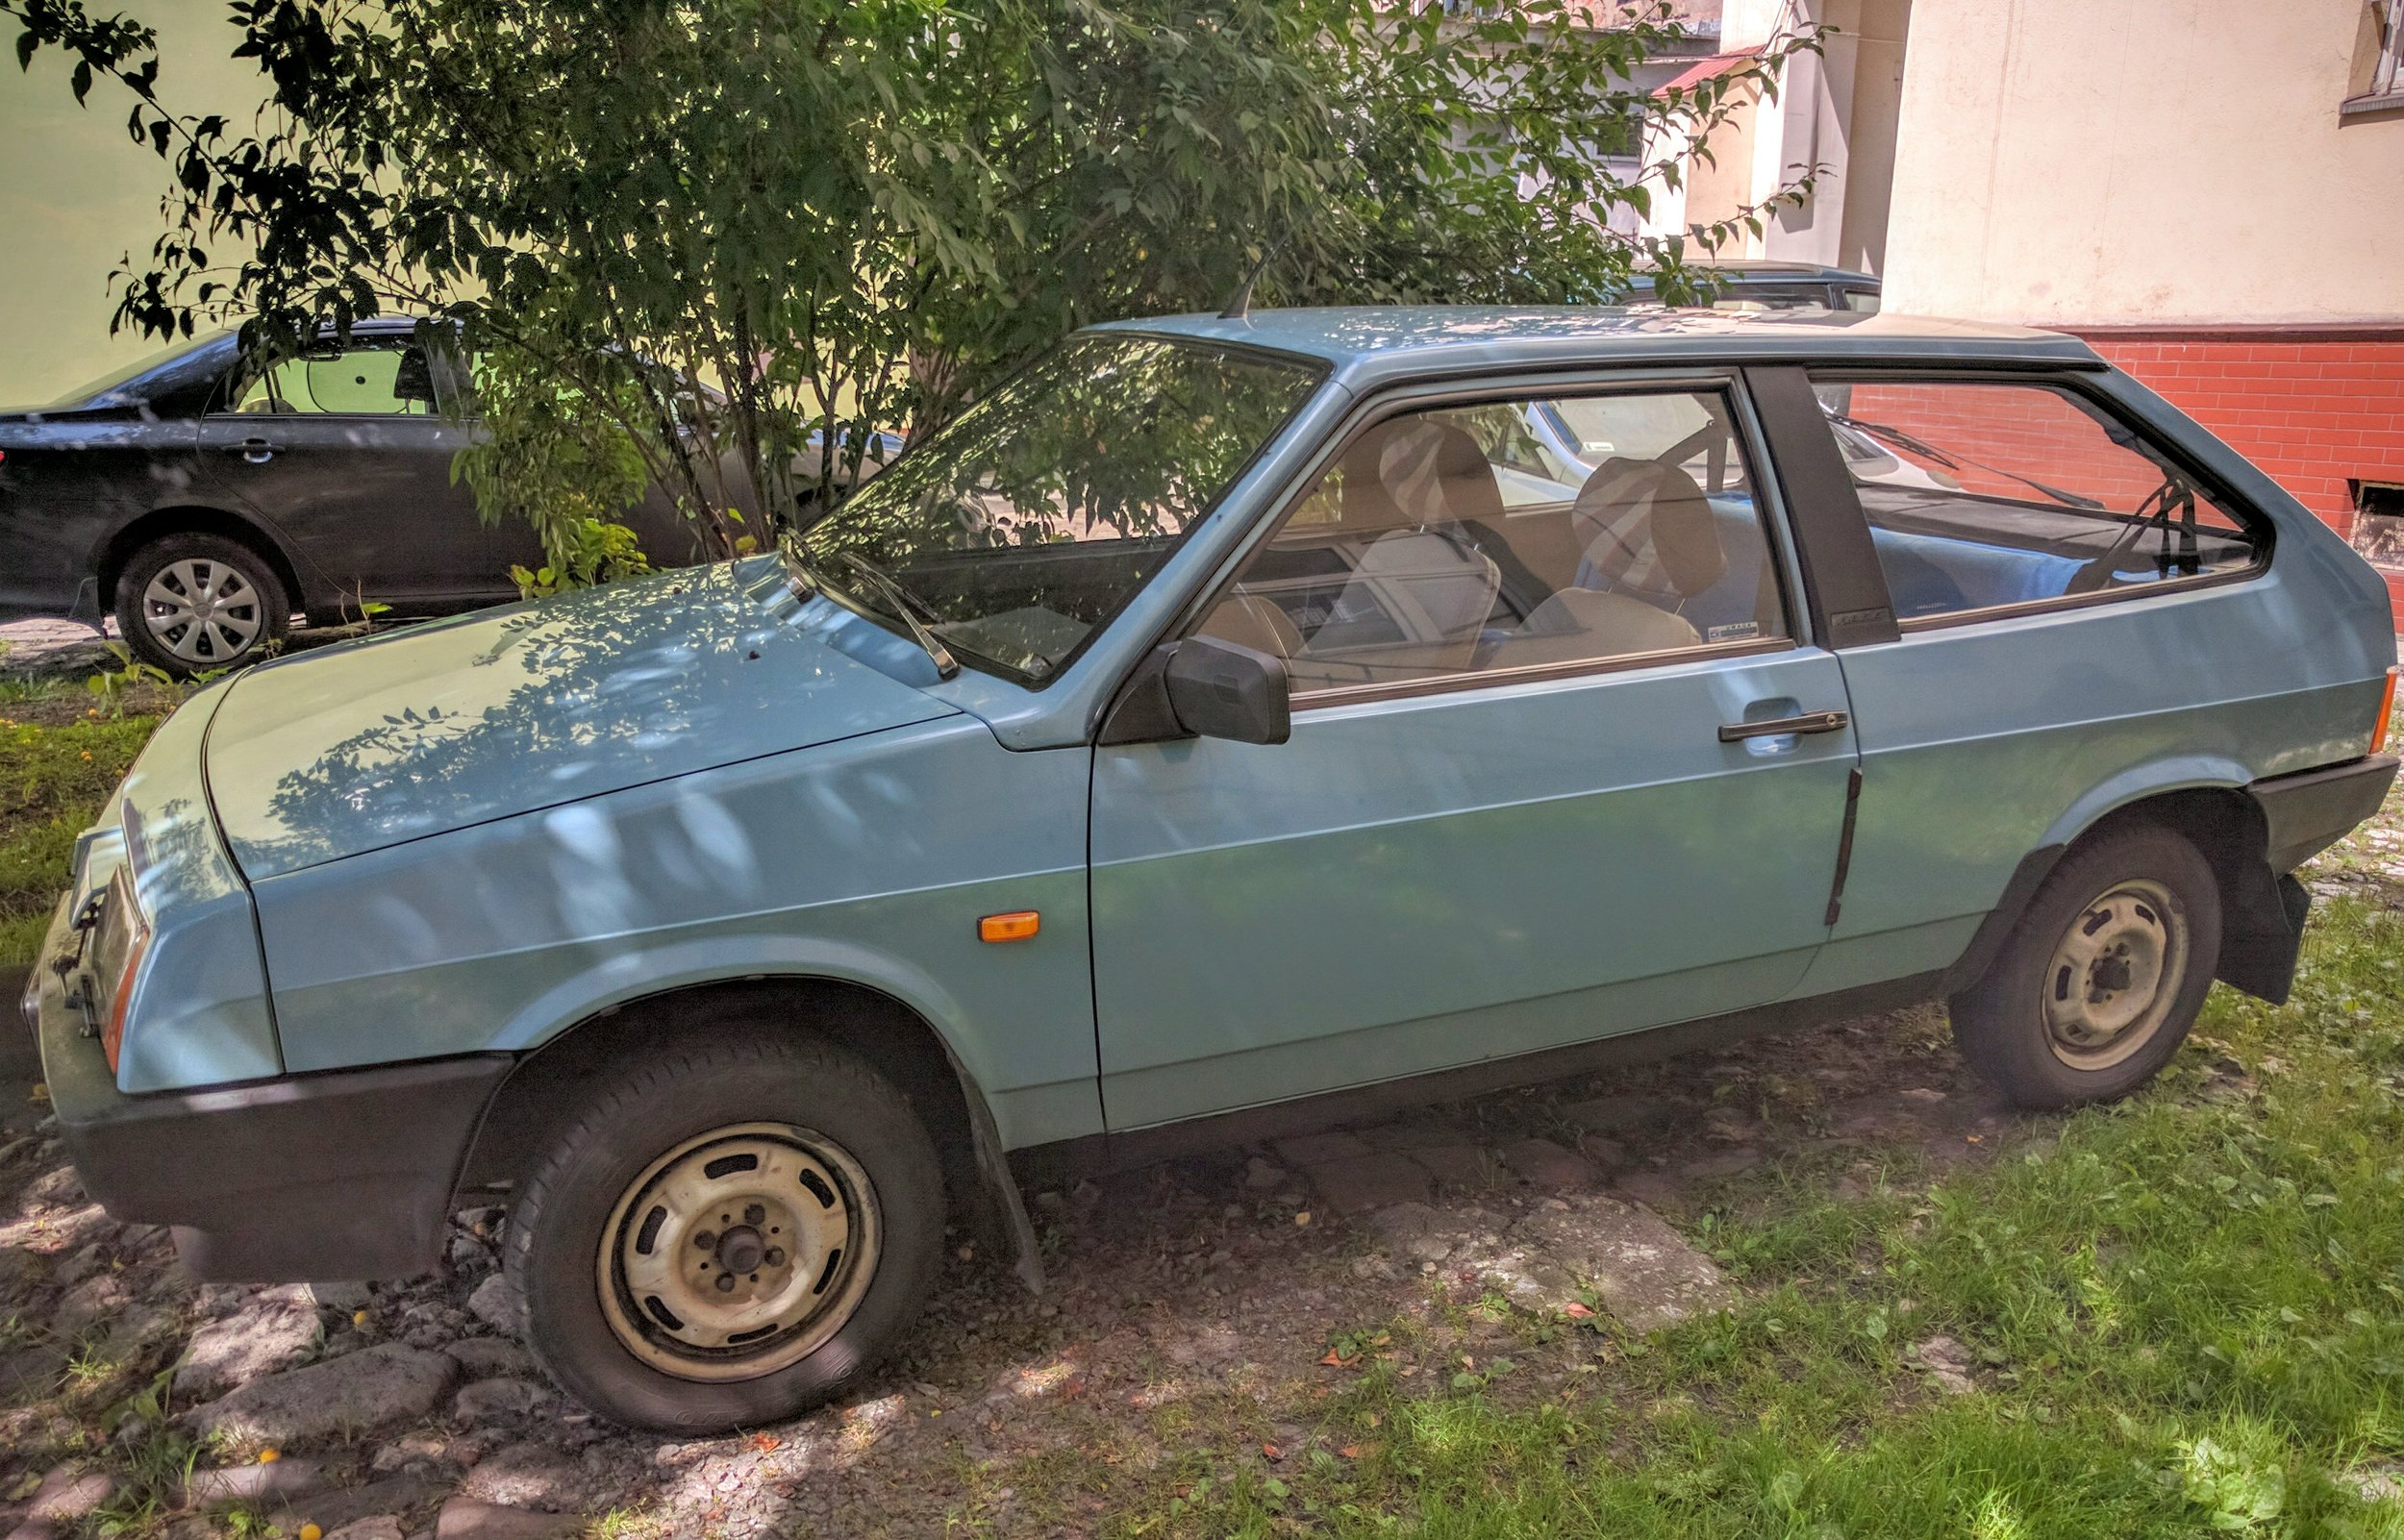 A Russian-made later model Lada in Krakow. Fun fact, when I was in Addis Ababa, pretty much every taxi in the city was an early-80's Lada... it was as if that's where the old ones went to die.